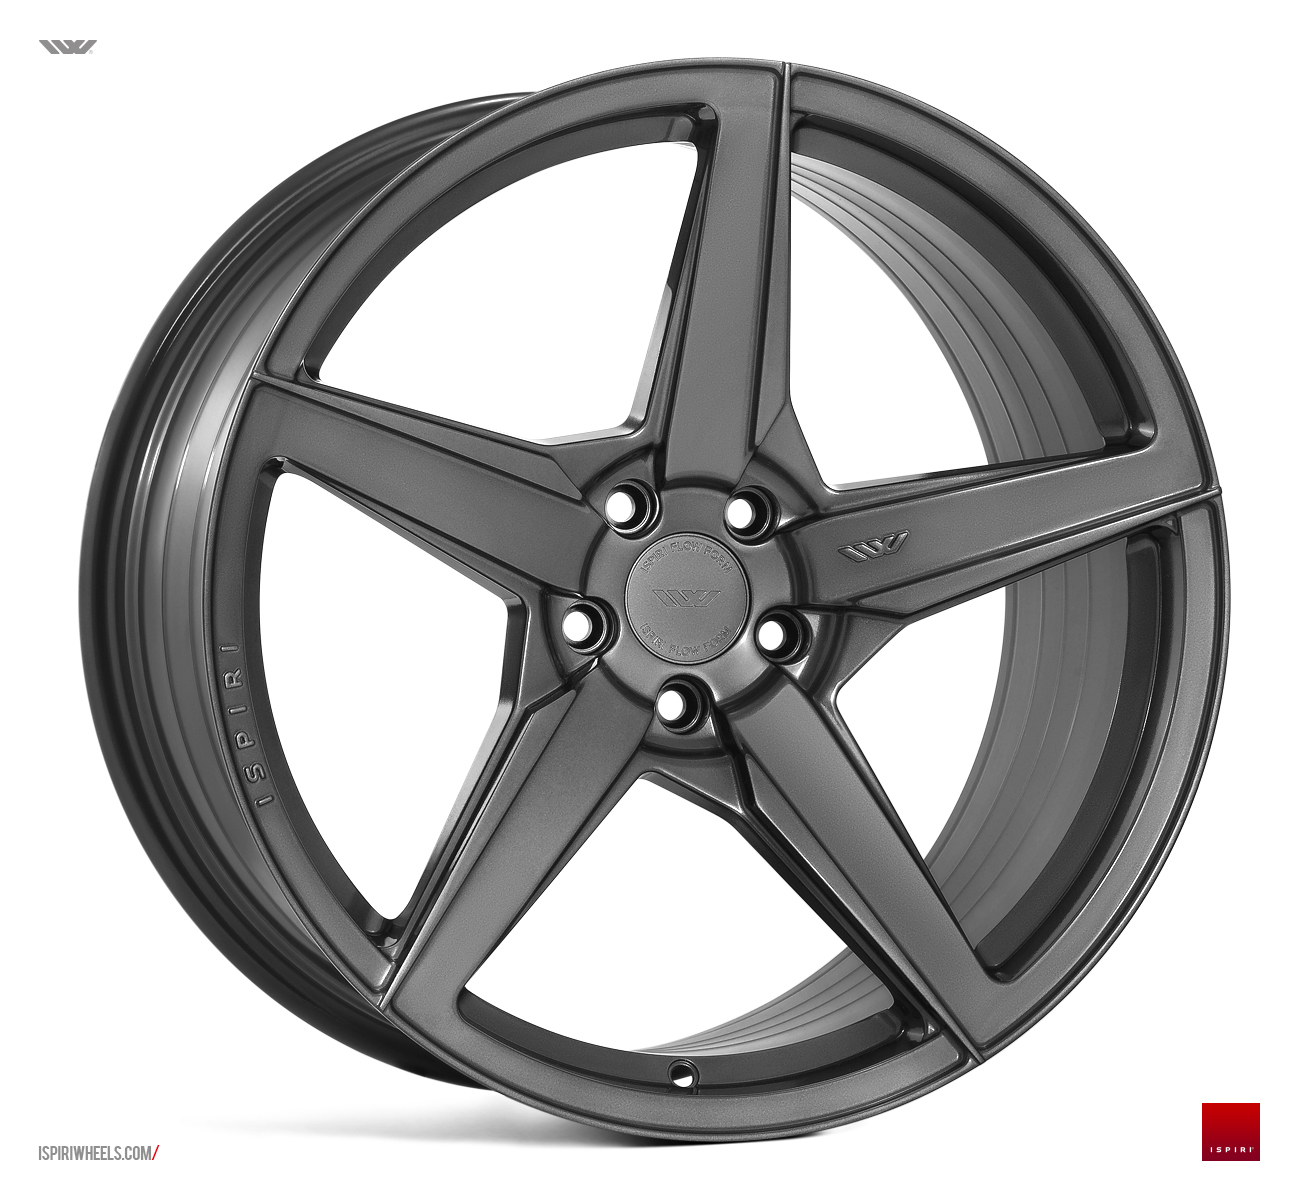 "NEW 20"" ISPIRI FFR5 5 SPOKE ALLOYS IN CARBON GRAPHITE, VARIOUS FITMENTS AVAILABLE 5x120"